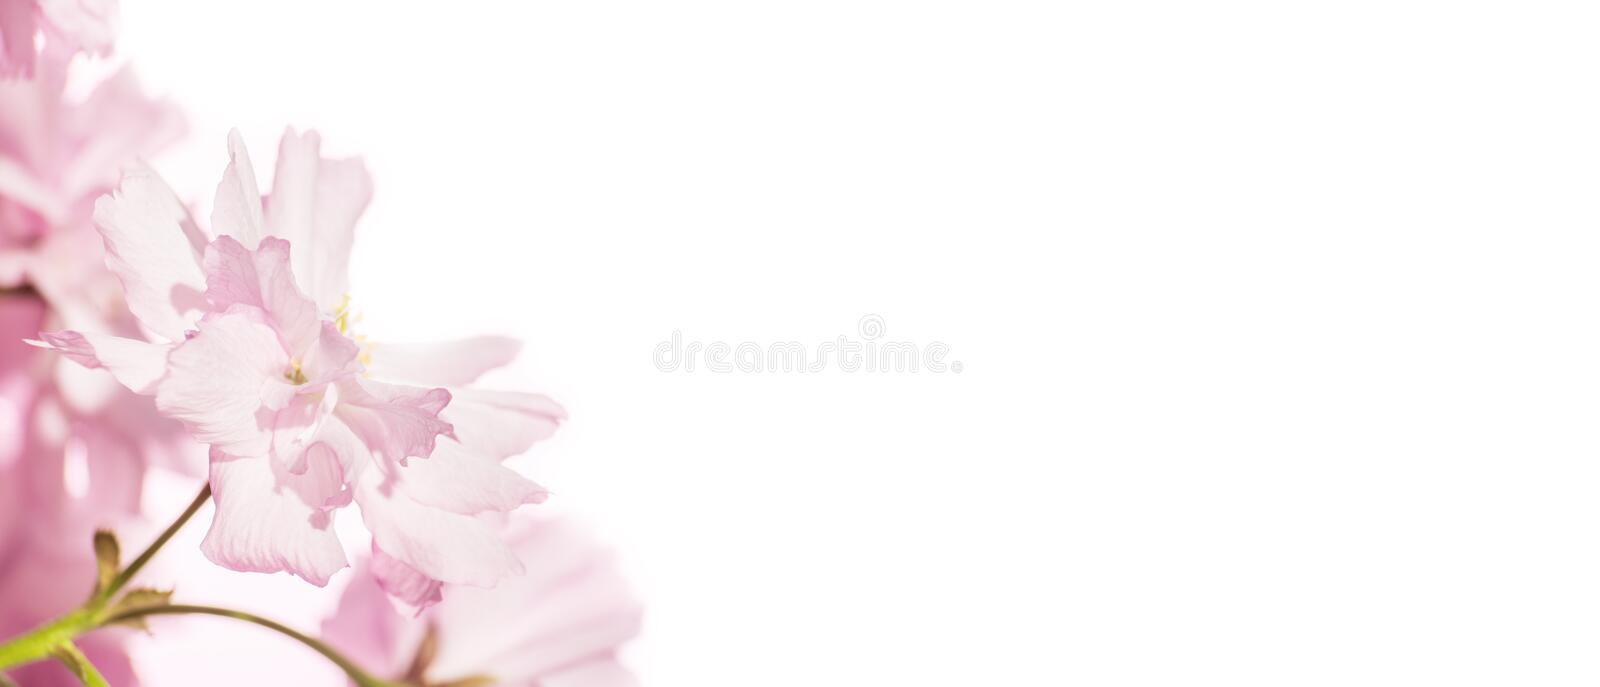 Bright delicate pink flowers isolated on white background royalty free stock photo